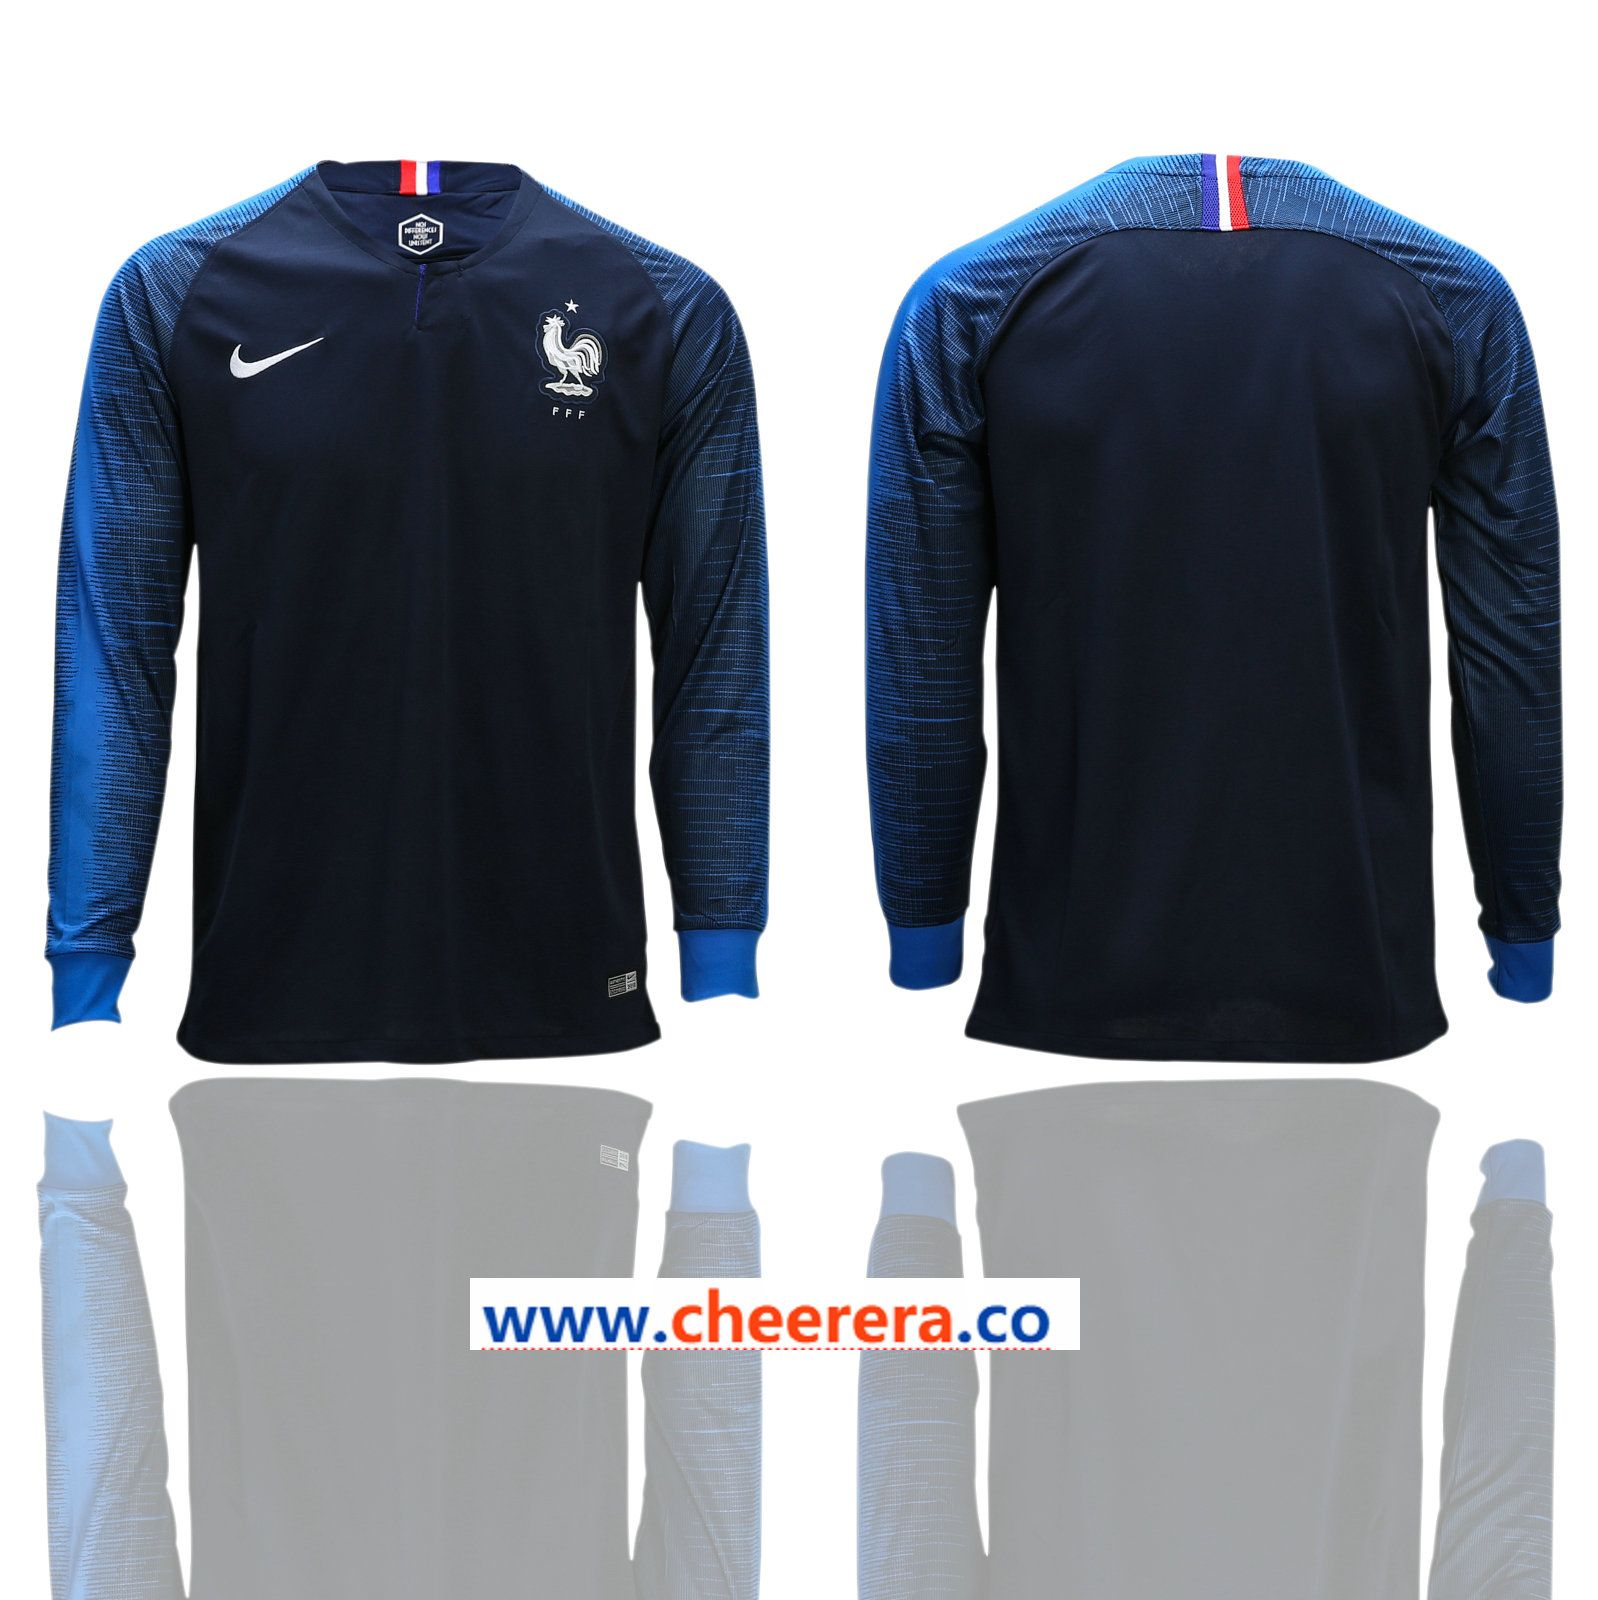 cc43b7863bc France Home 2018 FIFA World Cup Long Sleeve Thailand Soccer Jersey ...